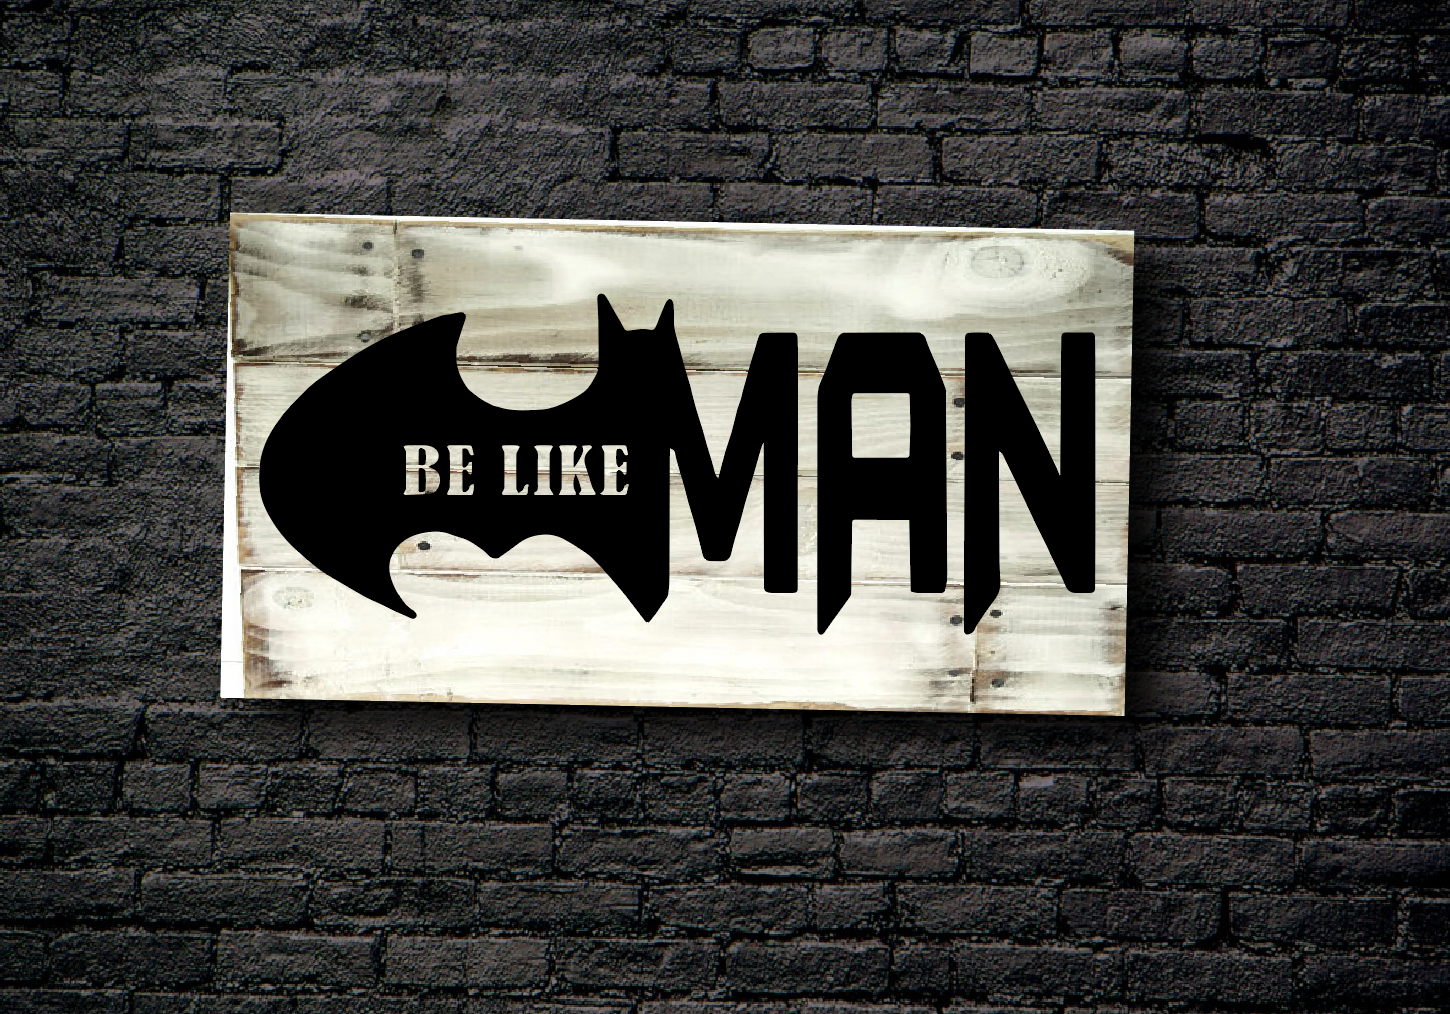 134. TEEN/KID: BE LIKE BATMAN